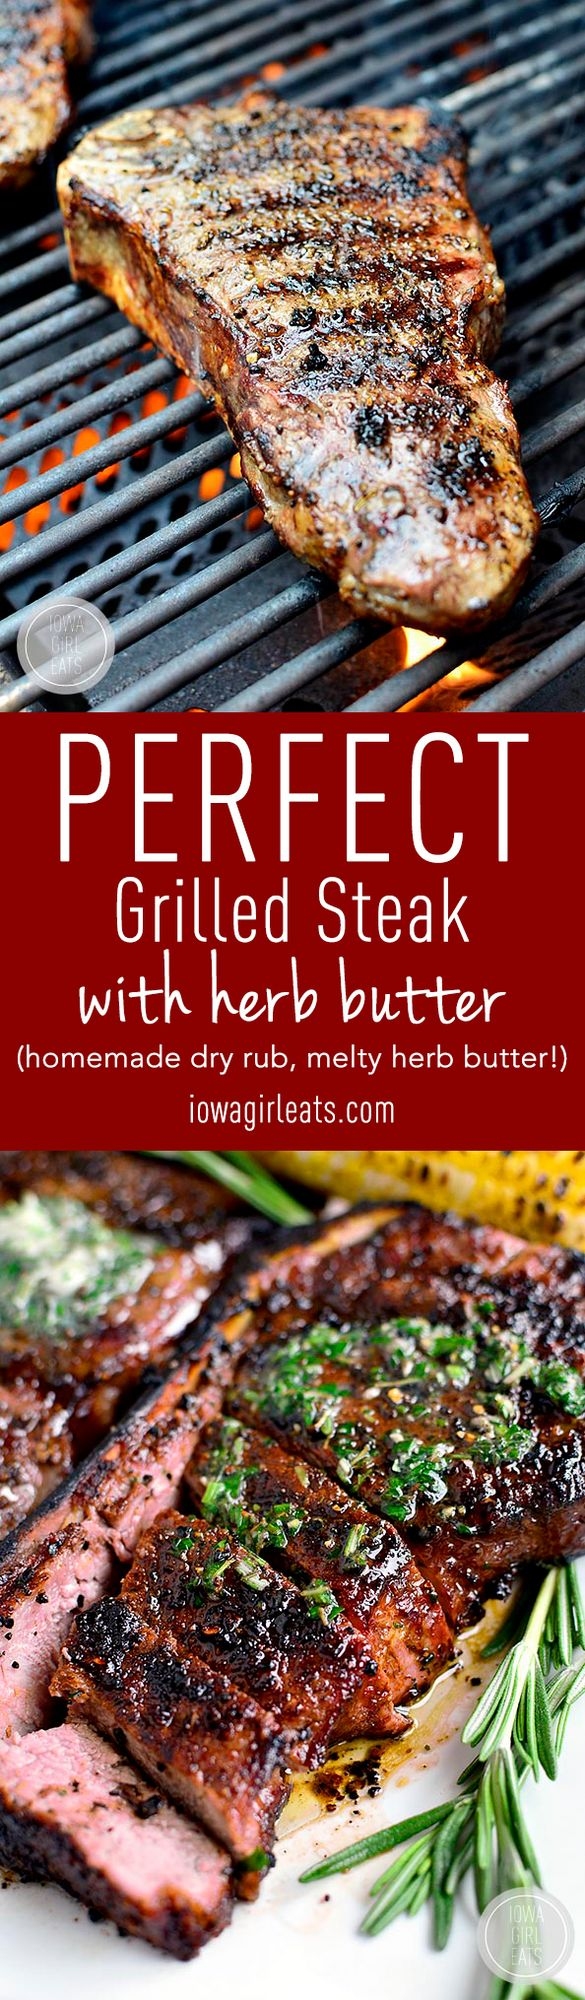 Perfect Grilled Steak with Herb Butter | Iowa Girl Eats ...